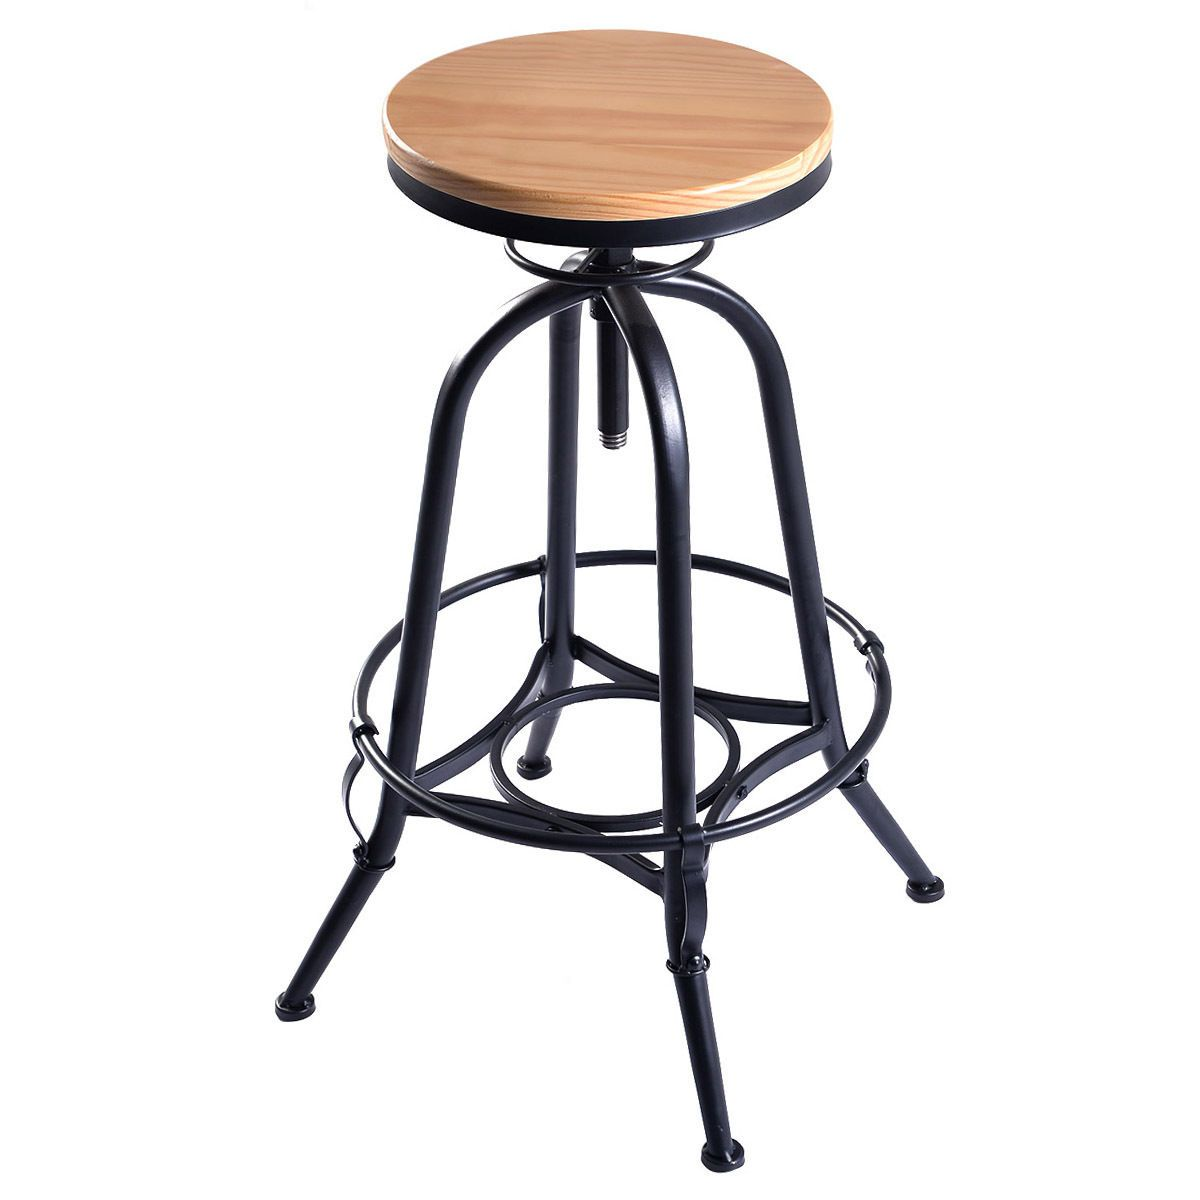 vintage bar stool metal frame wood top adjustable height swivel industrial new